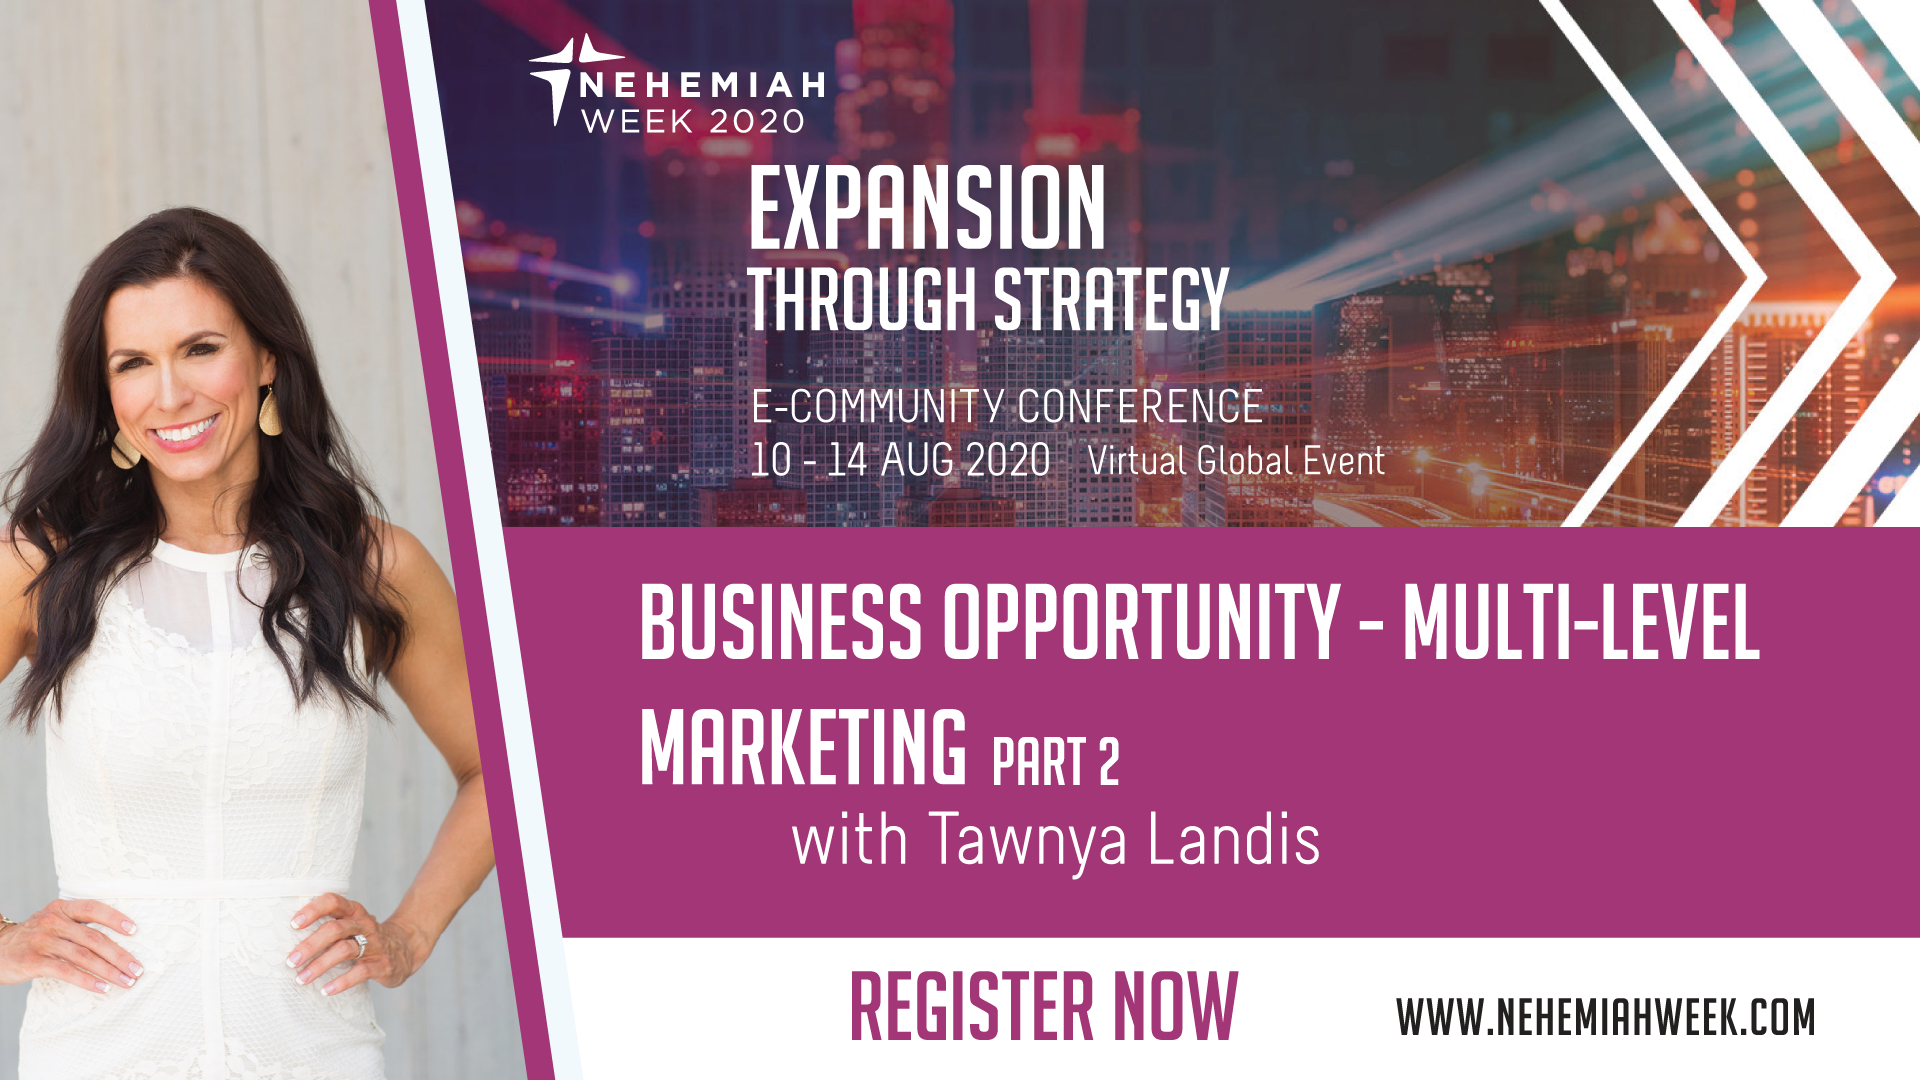 Business Opportunity Multi Level Marketing Part II with Tawnya Landis